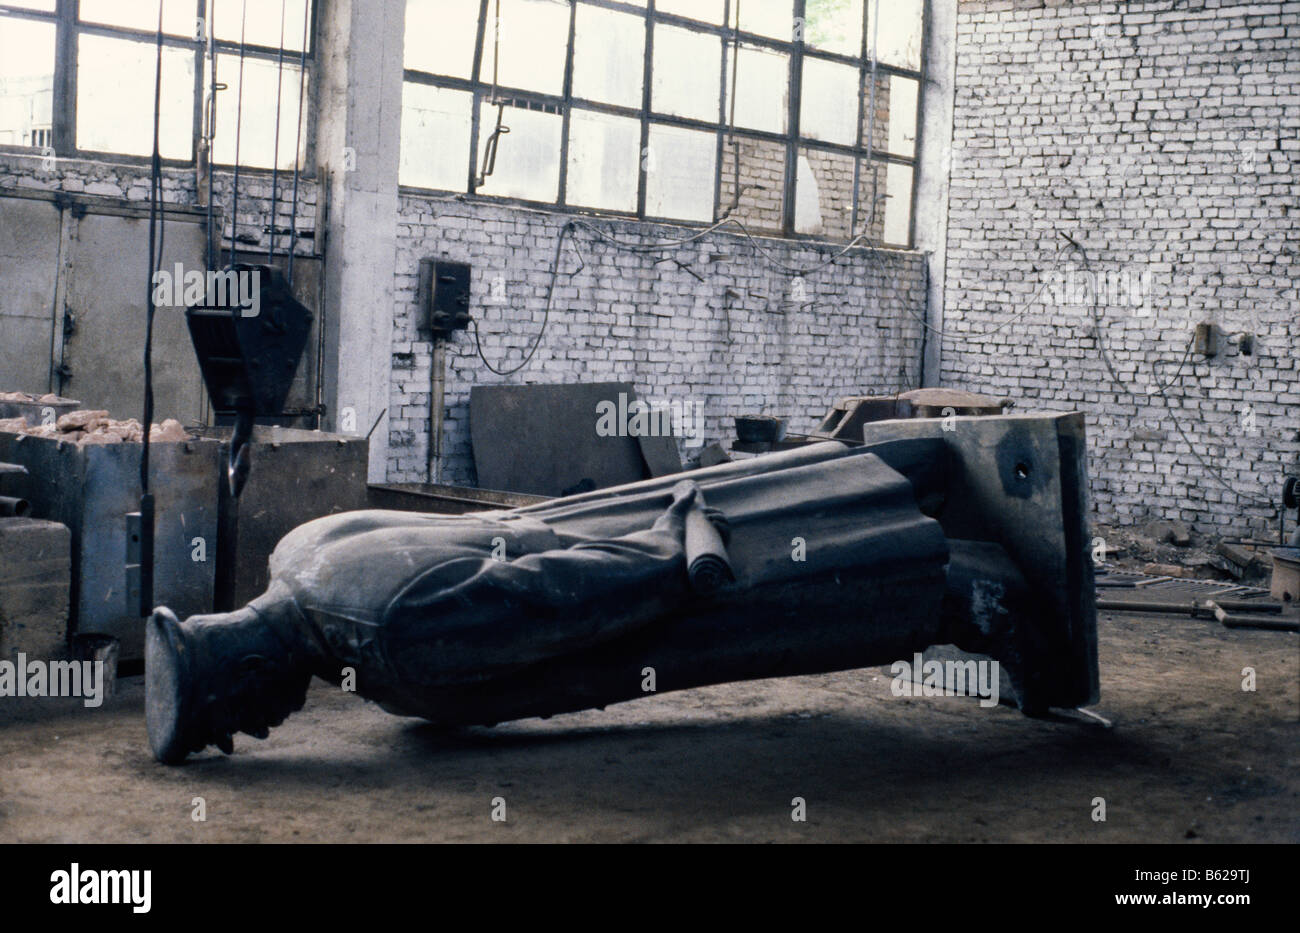 Statue of Joseph Stalin lays face down in the metal foundry where it was once built in Tirana, Albania, 1992 - Stock Image